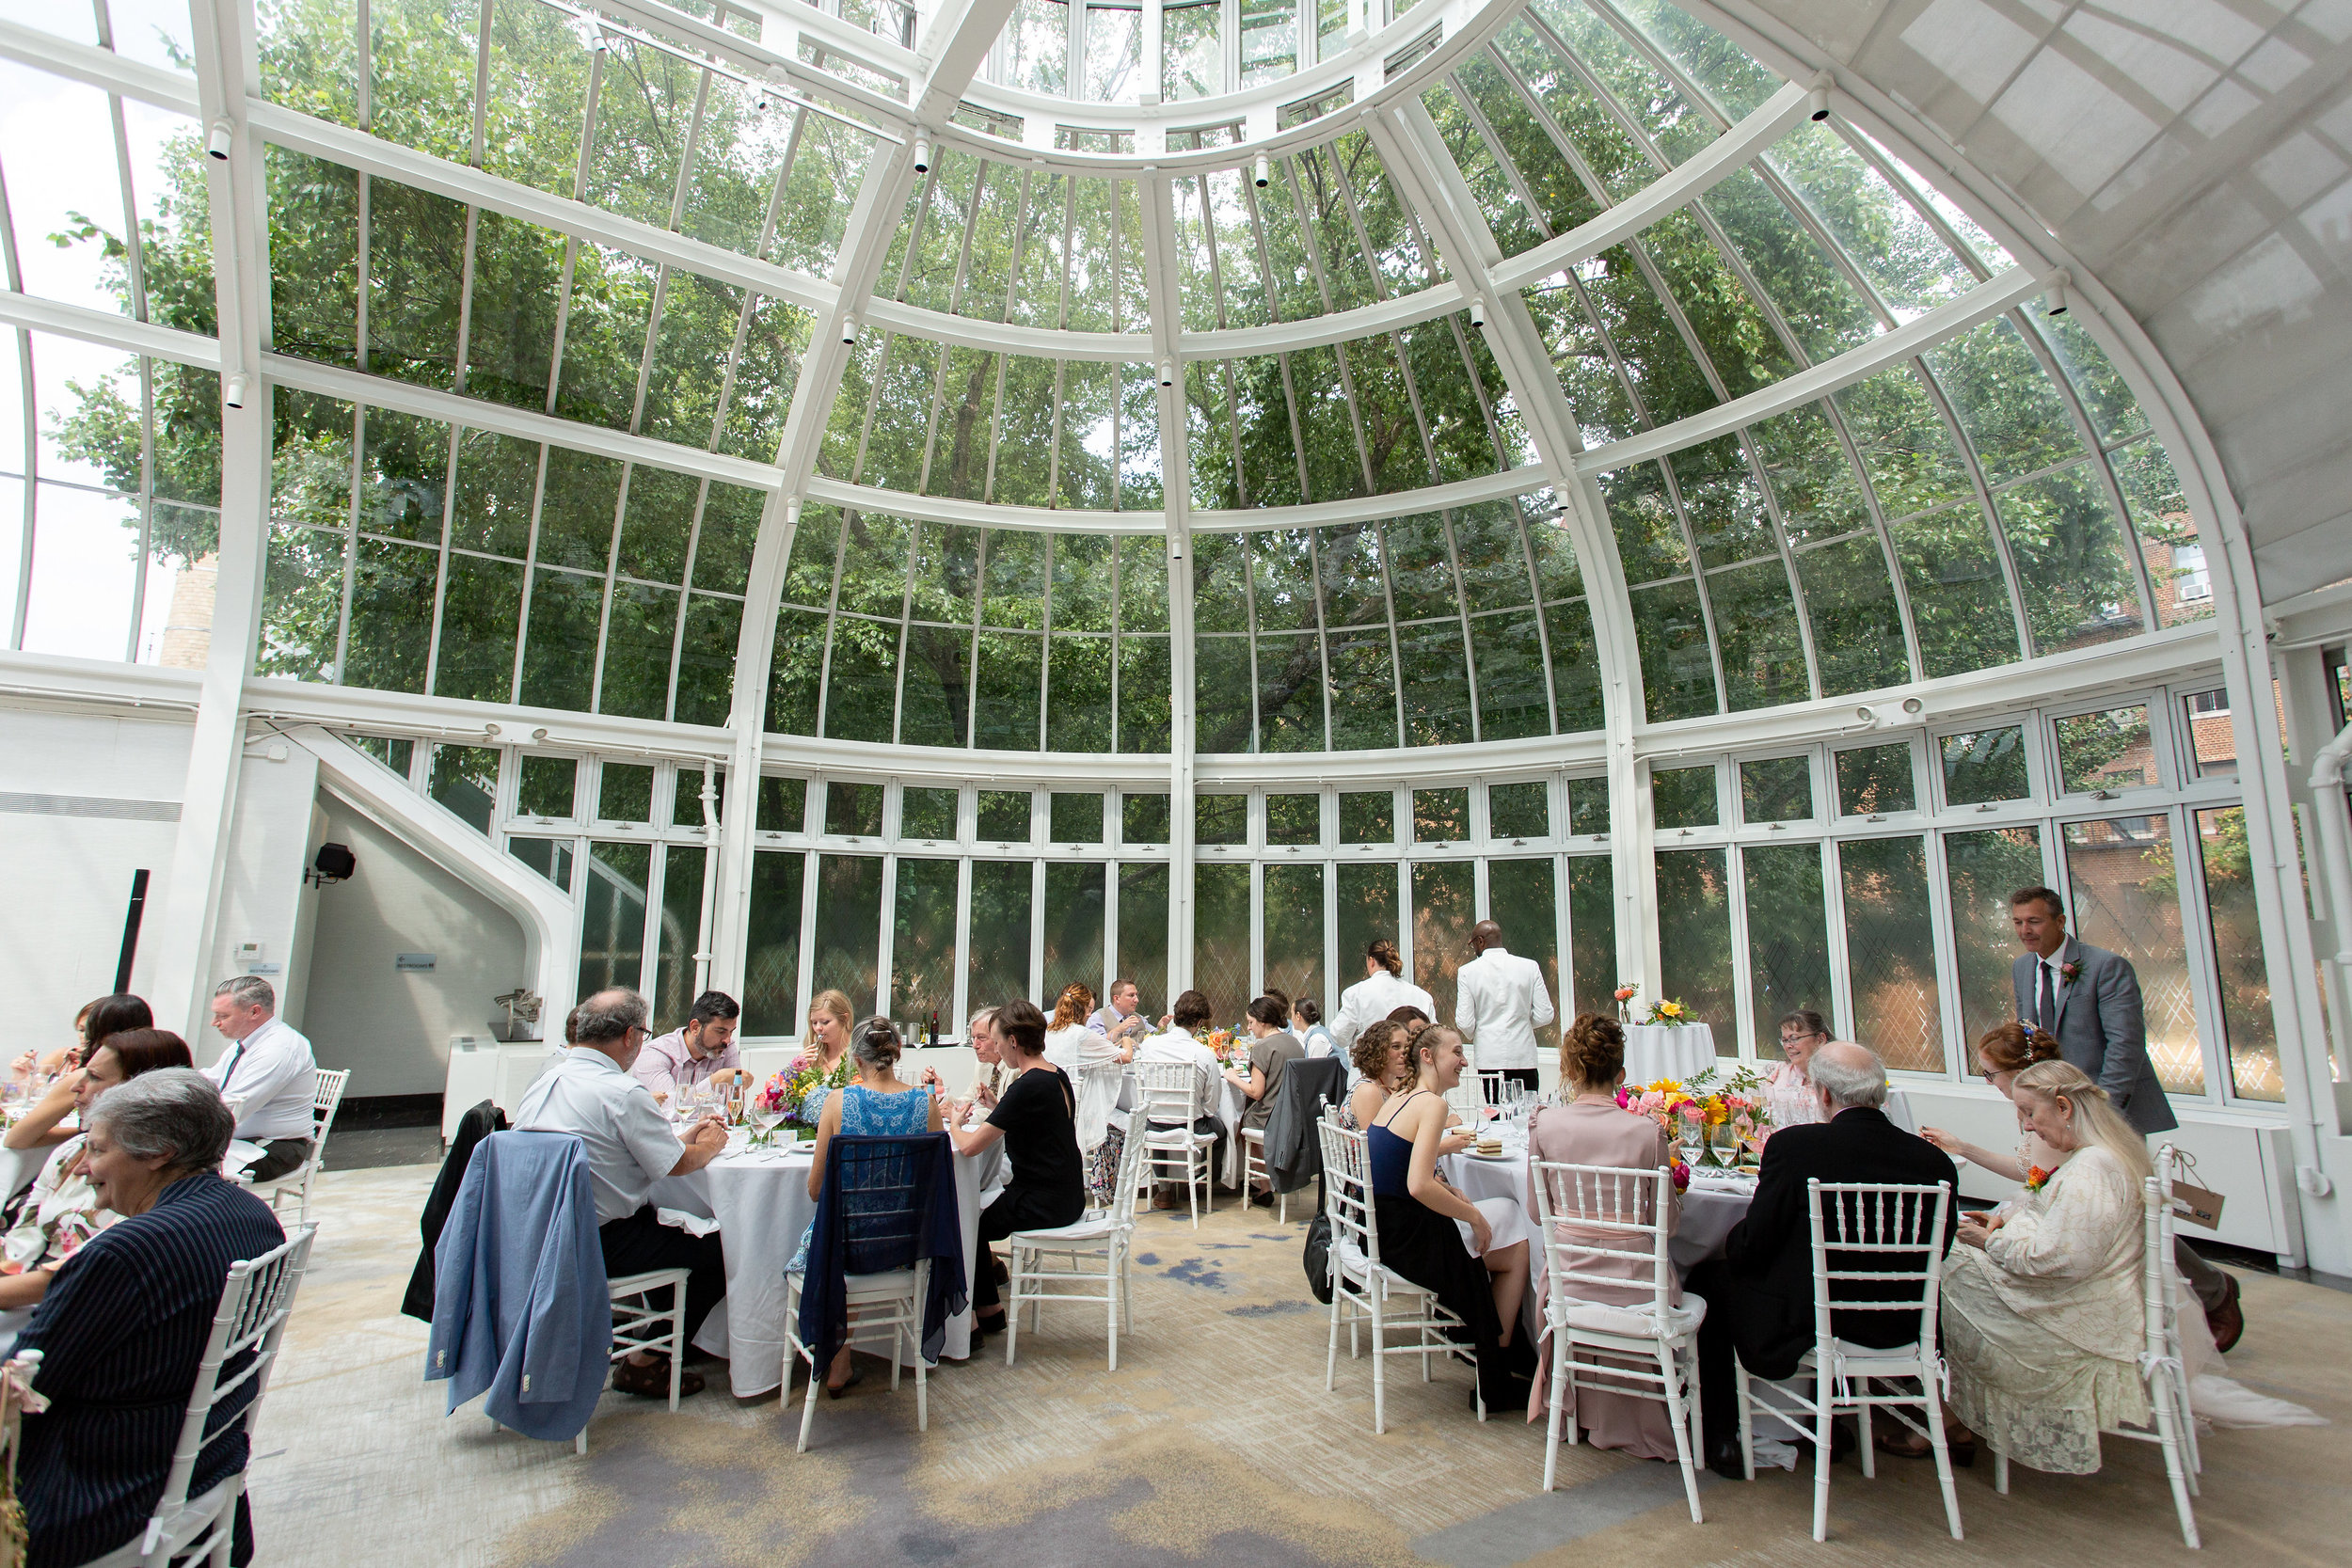 Tall & Small Events NYC, R+J, Colorful Intimate Summer Garden Brunch Wedding at the Palm House, Brooklyn Botanic Gardens, Brooklyn New York City. Photo: Kristy May Photography.